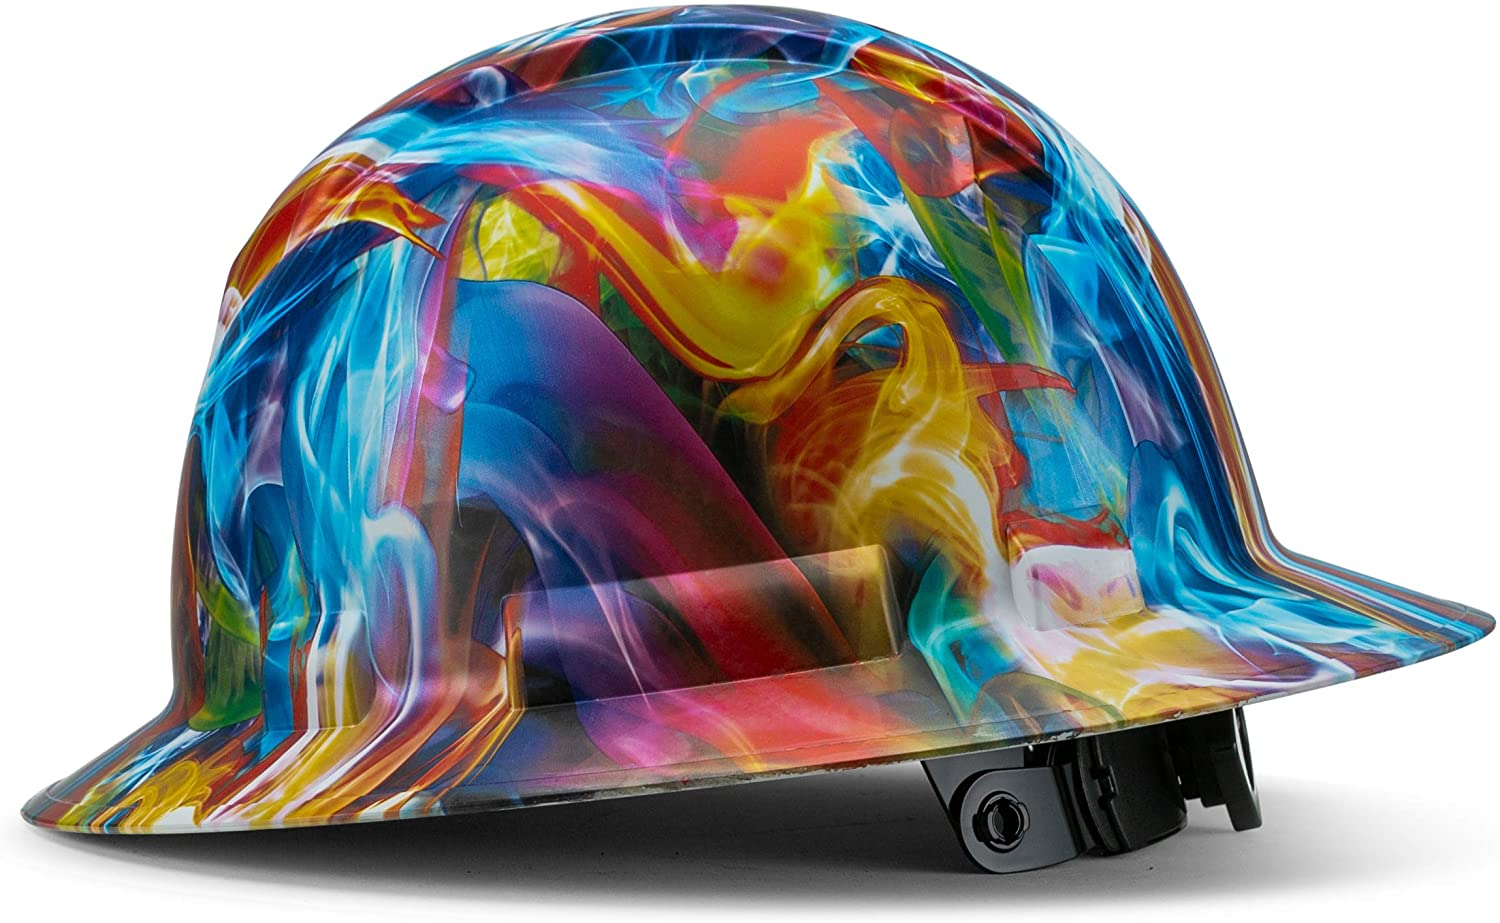 Full Brim Pyramex Hard Hat, Psychedelic Trippy Soap Art Design Safety Helmet 6pt, By Acerpal